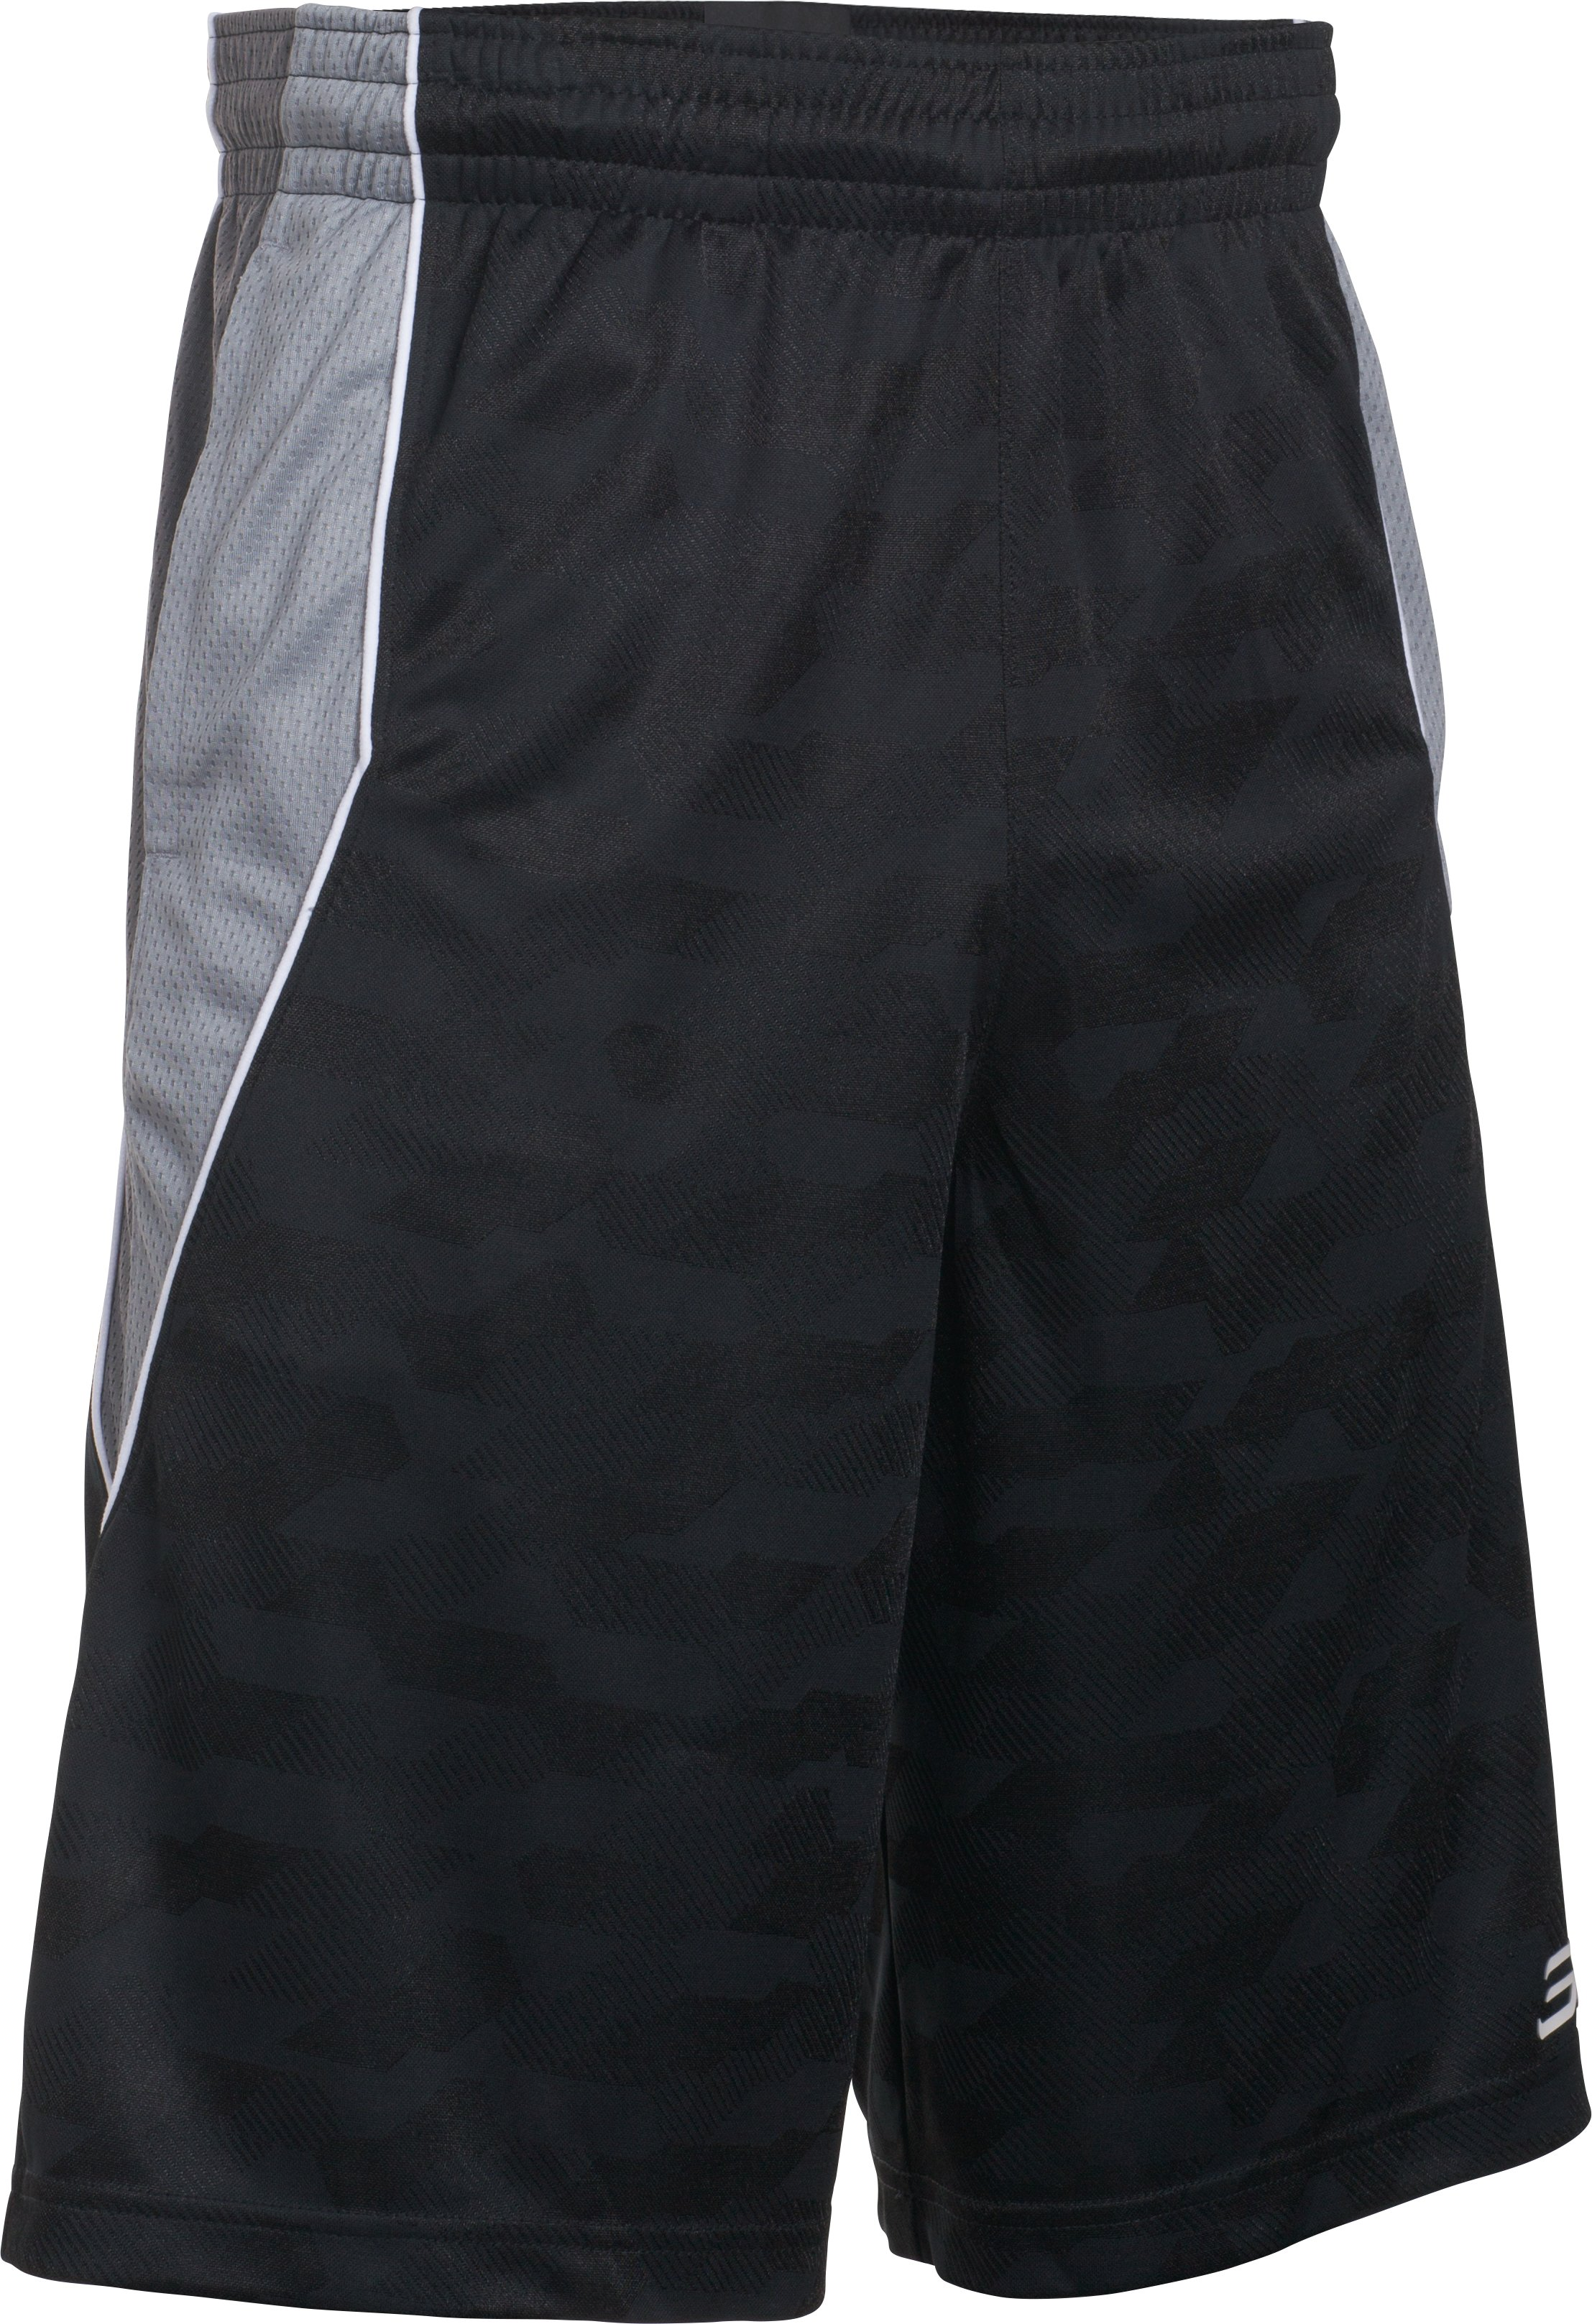 Men's SC30 Warrior Spear Shorts, Black ,